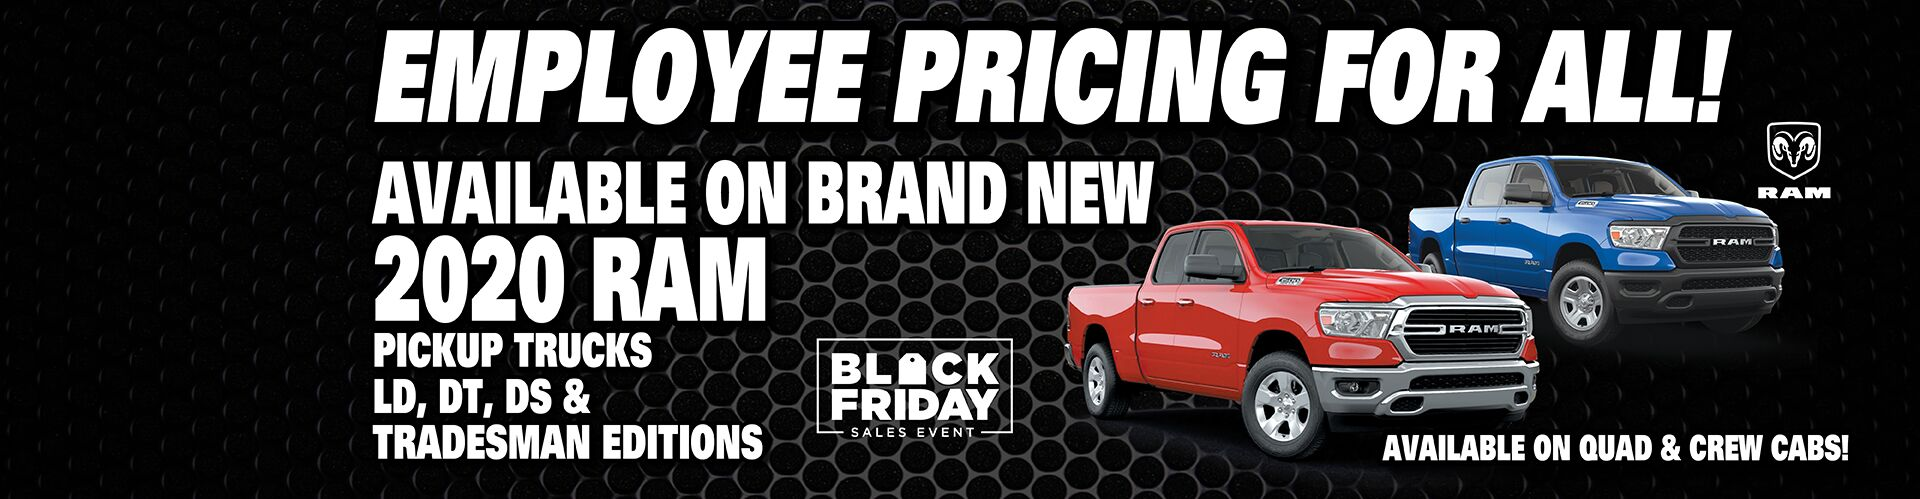 Employee Pricing On Ram Trucks!